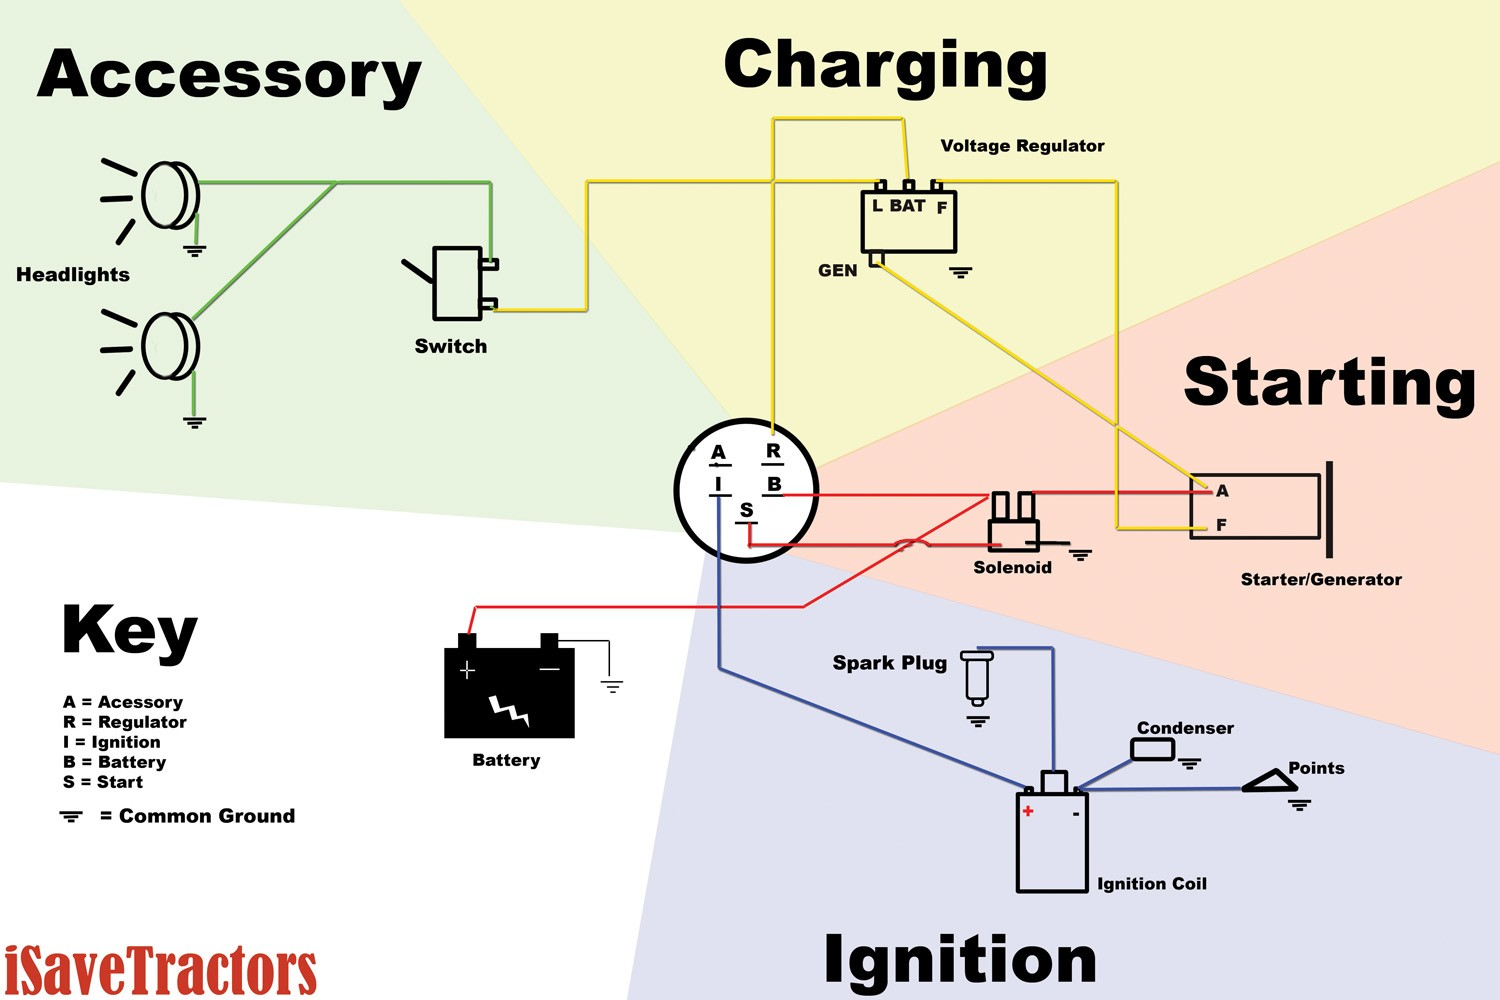 5 prong ignition switch wiring diagram wiring diagram image engine wiring tractor starter gen copy web sel ignition volvo penta ignition switch wiring diagram asfbconference2016 Choice Image